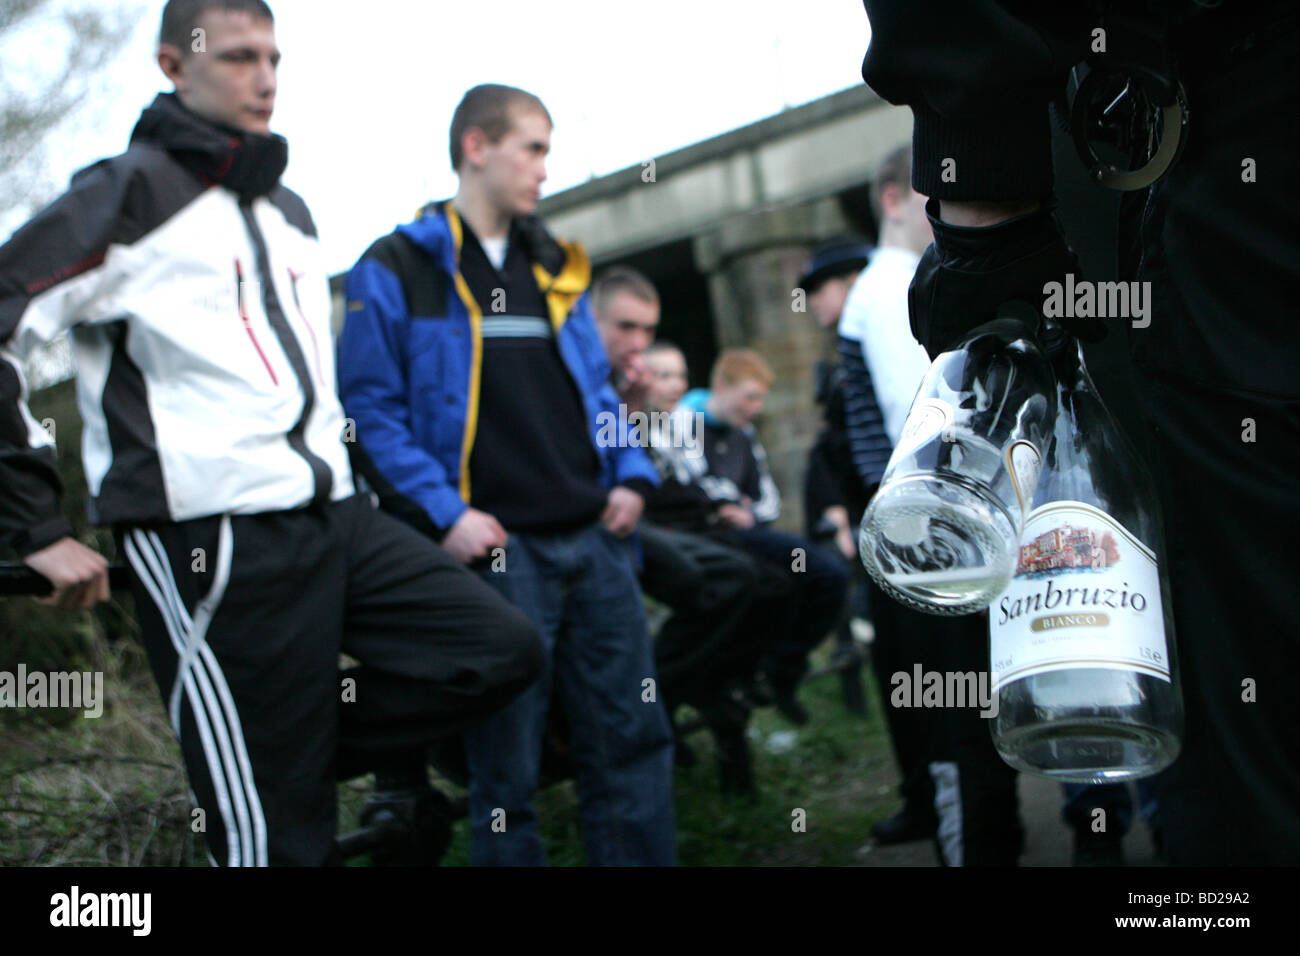 Police seize alcohol from underage drinkers. - Stock Image